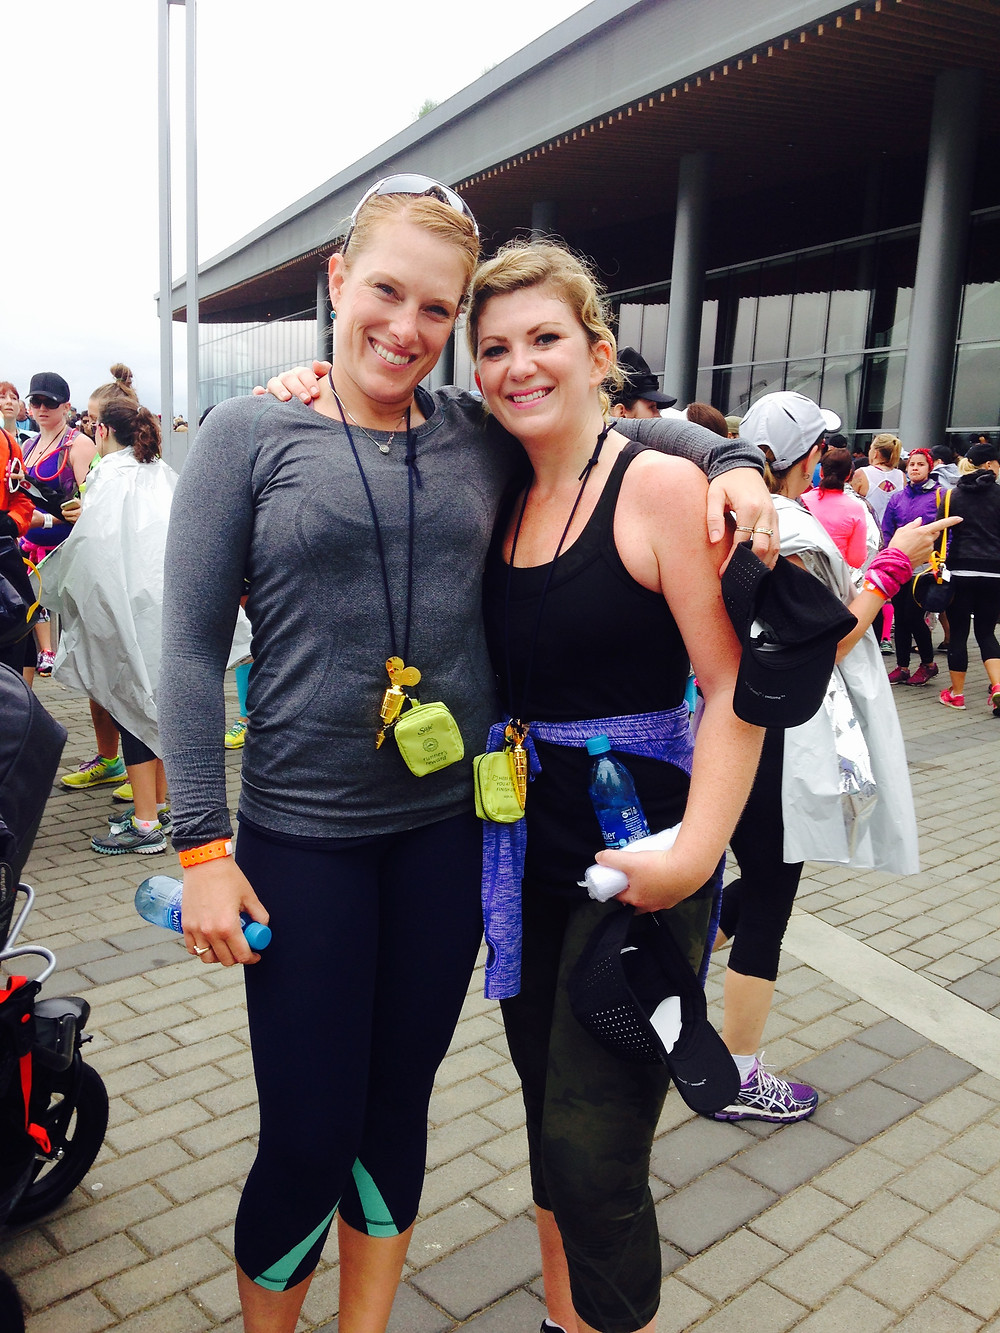 Krista Guloien and Marla Guloien Running In Vancouver SeaWheeze 2015